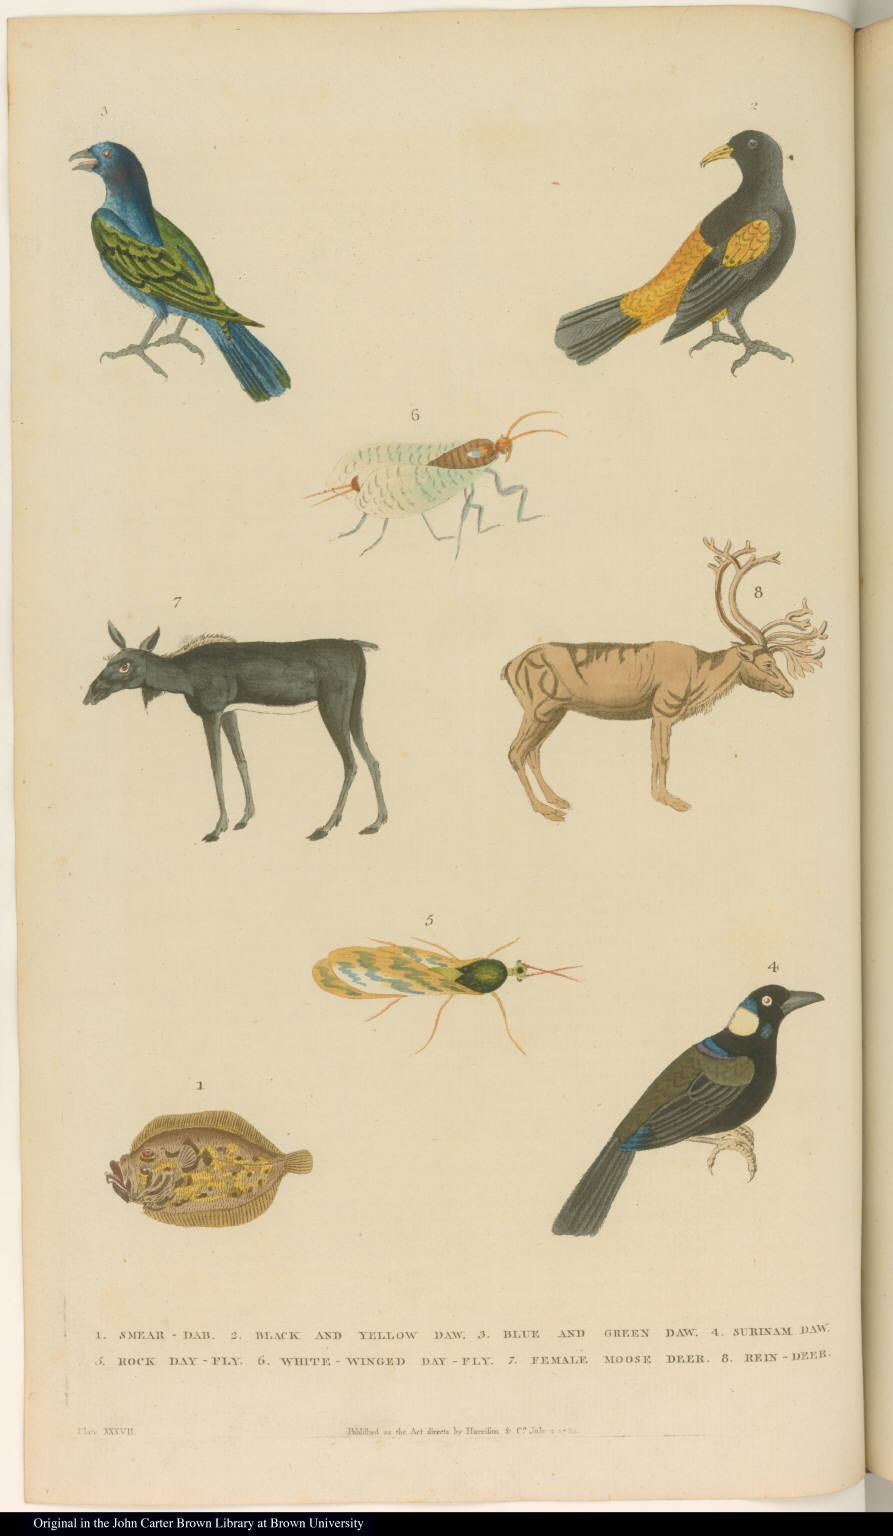 [Birds, insects, deer, and a fish]